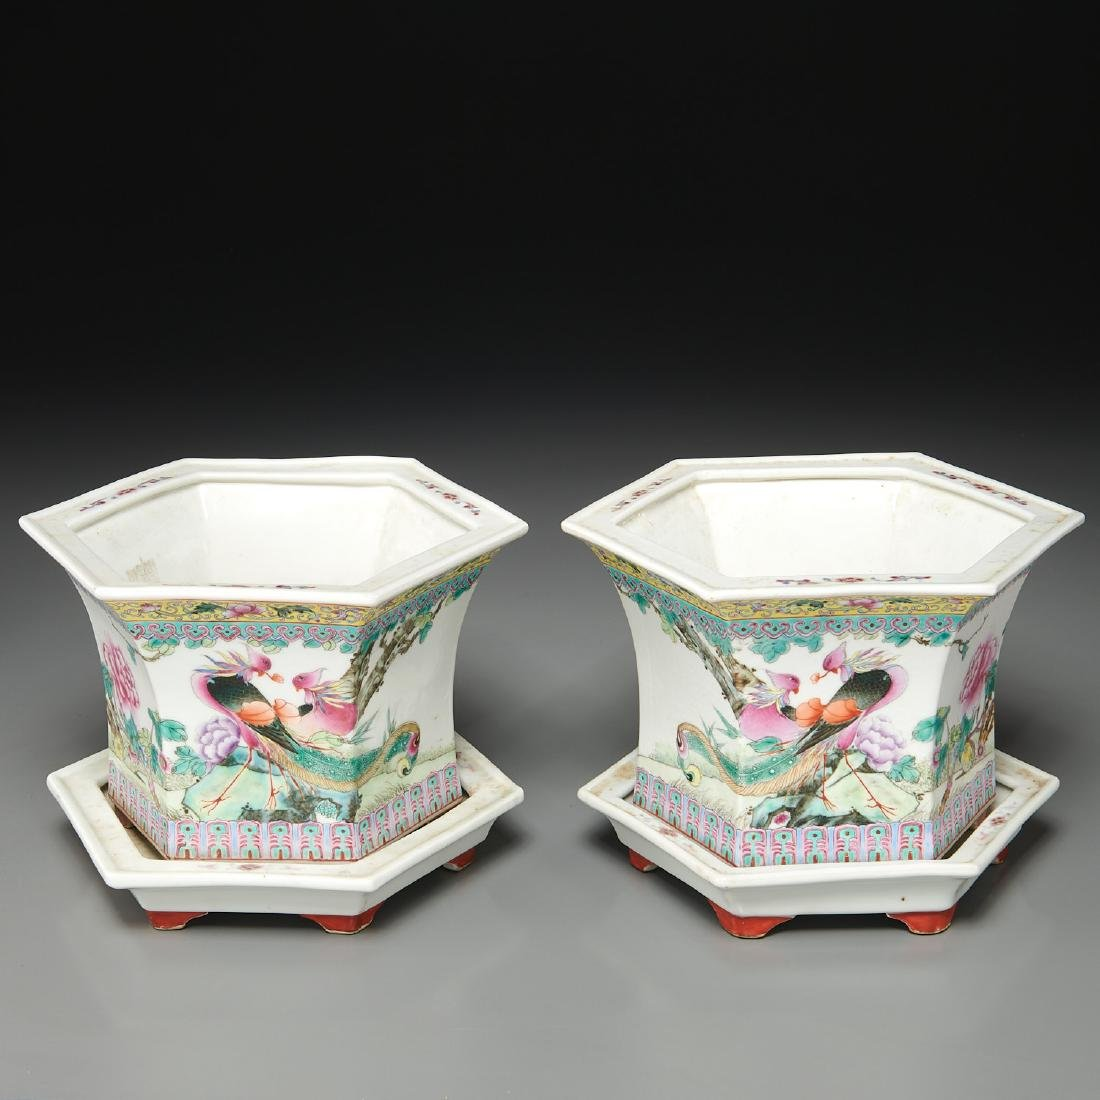 Pair Chinese famille rose porcelain jardinieres